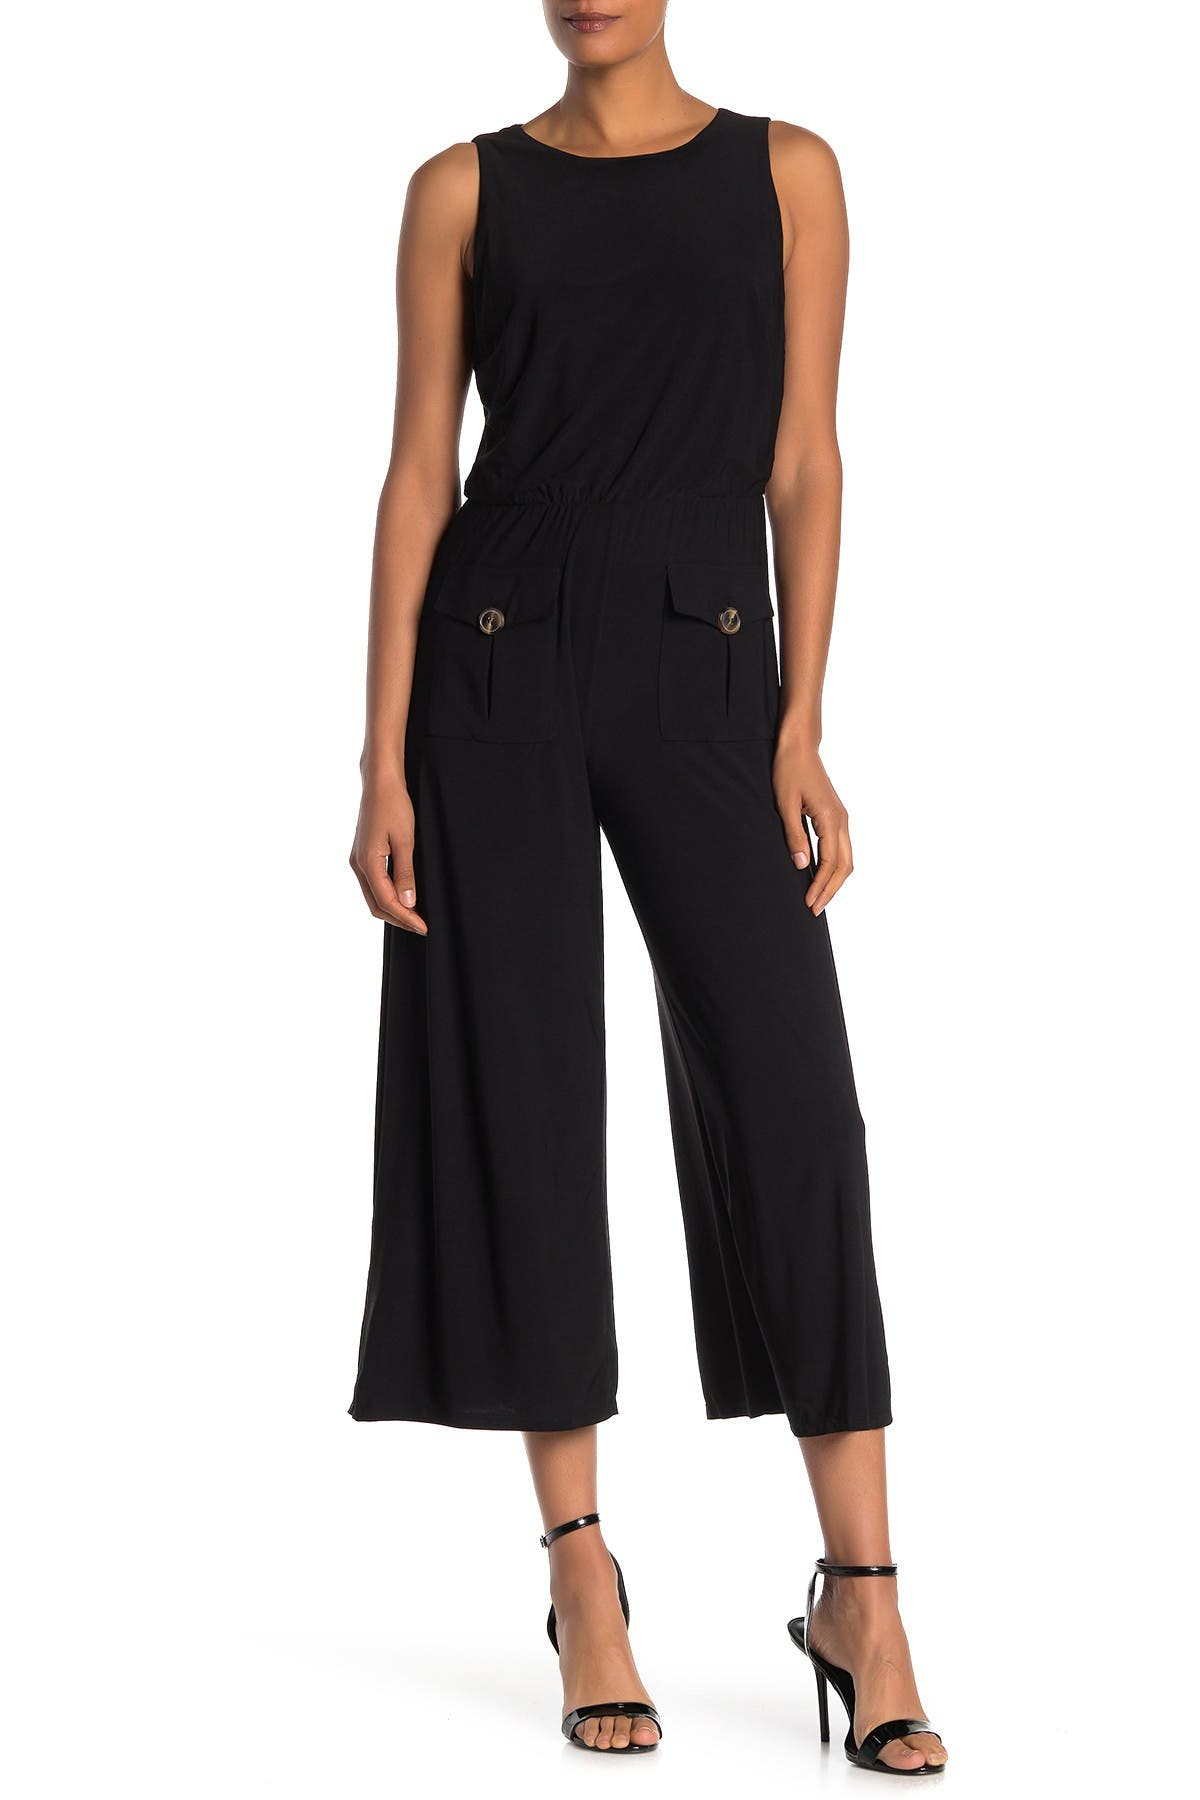 Image of MSK Front Button Sleeveless Jumpsuit